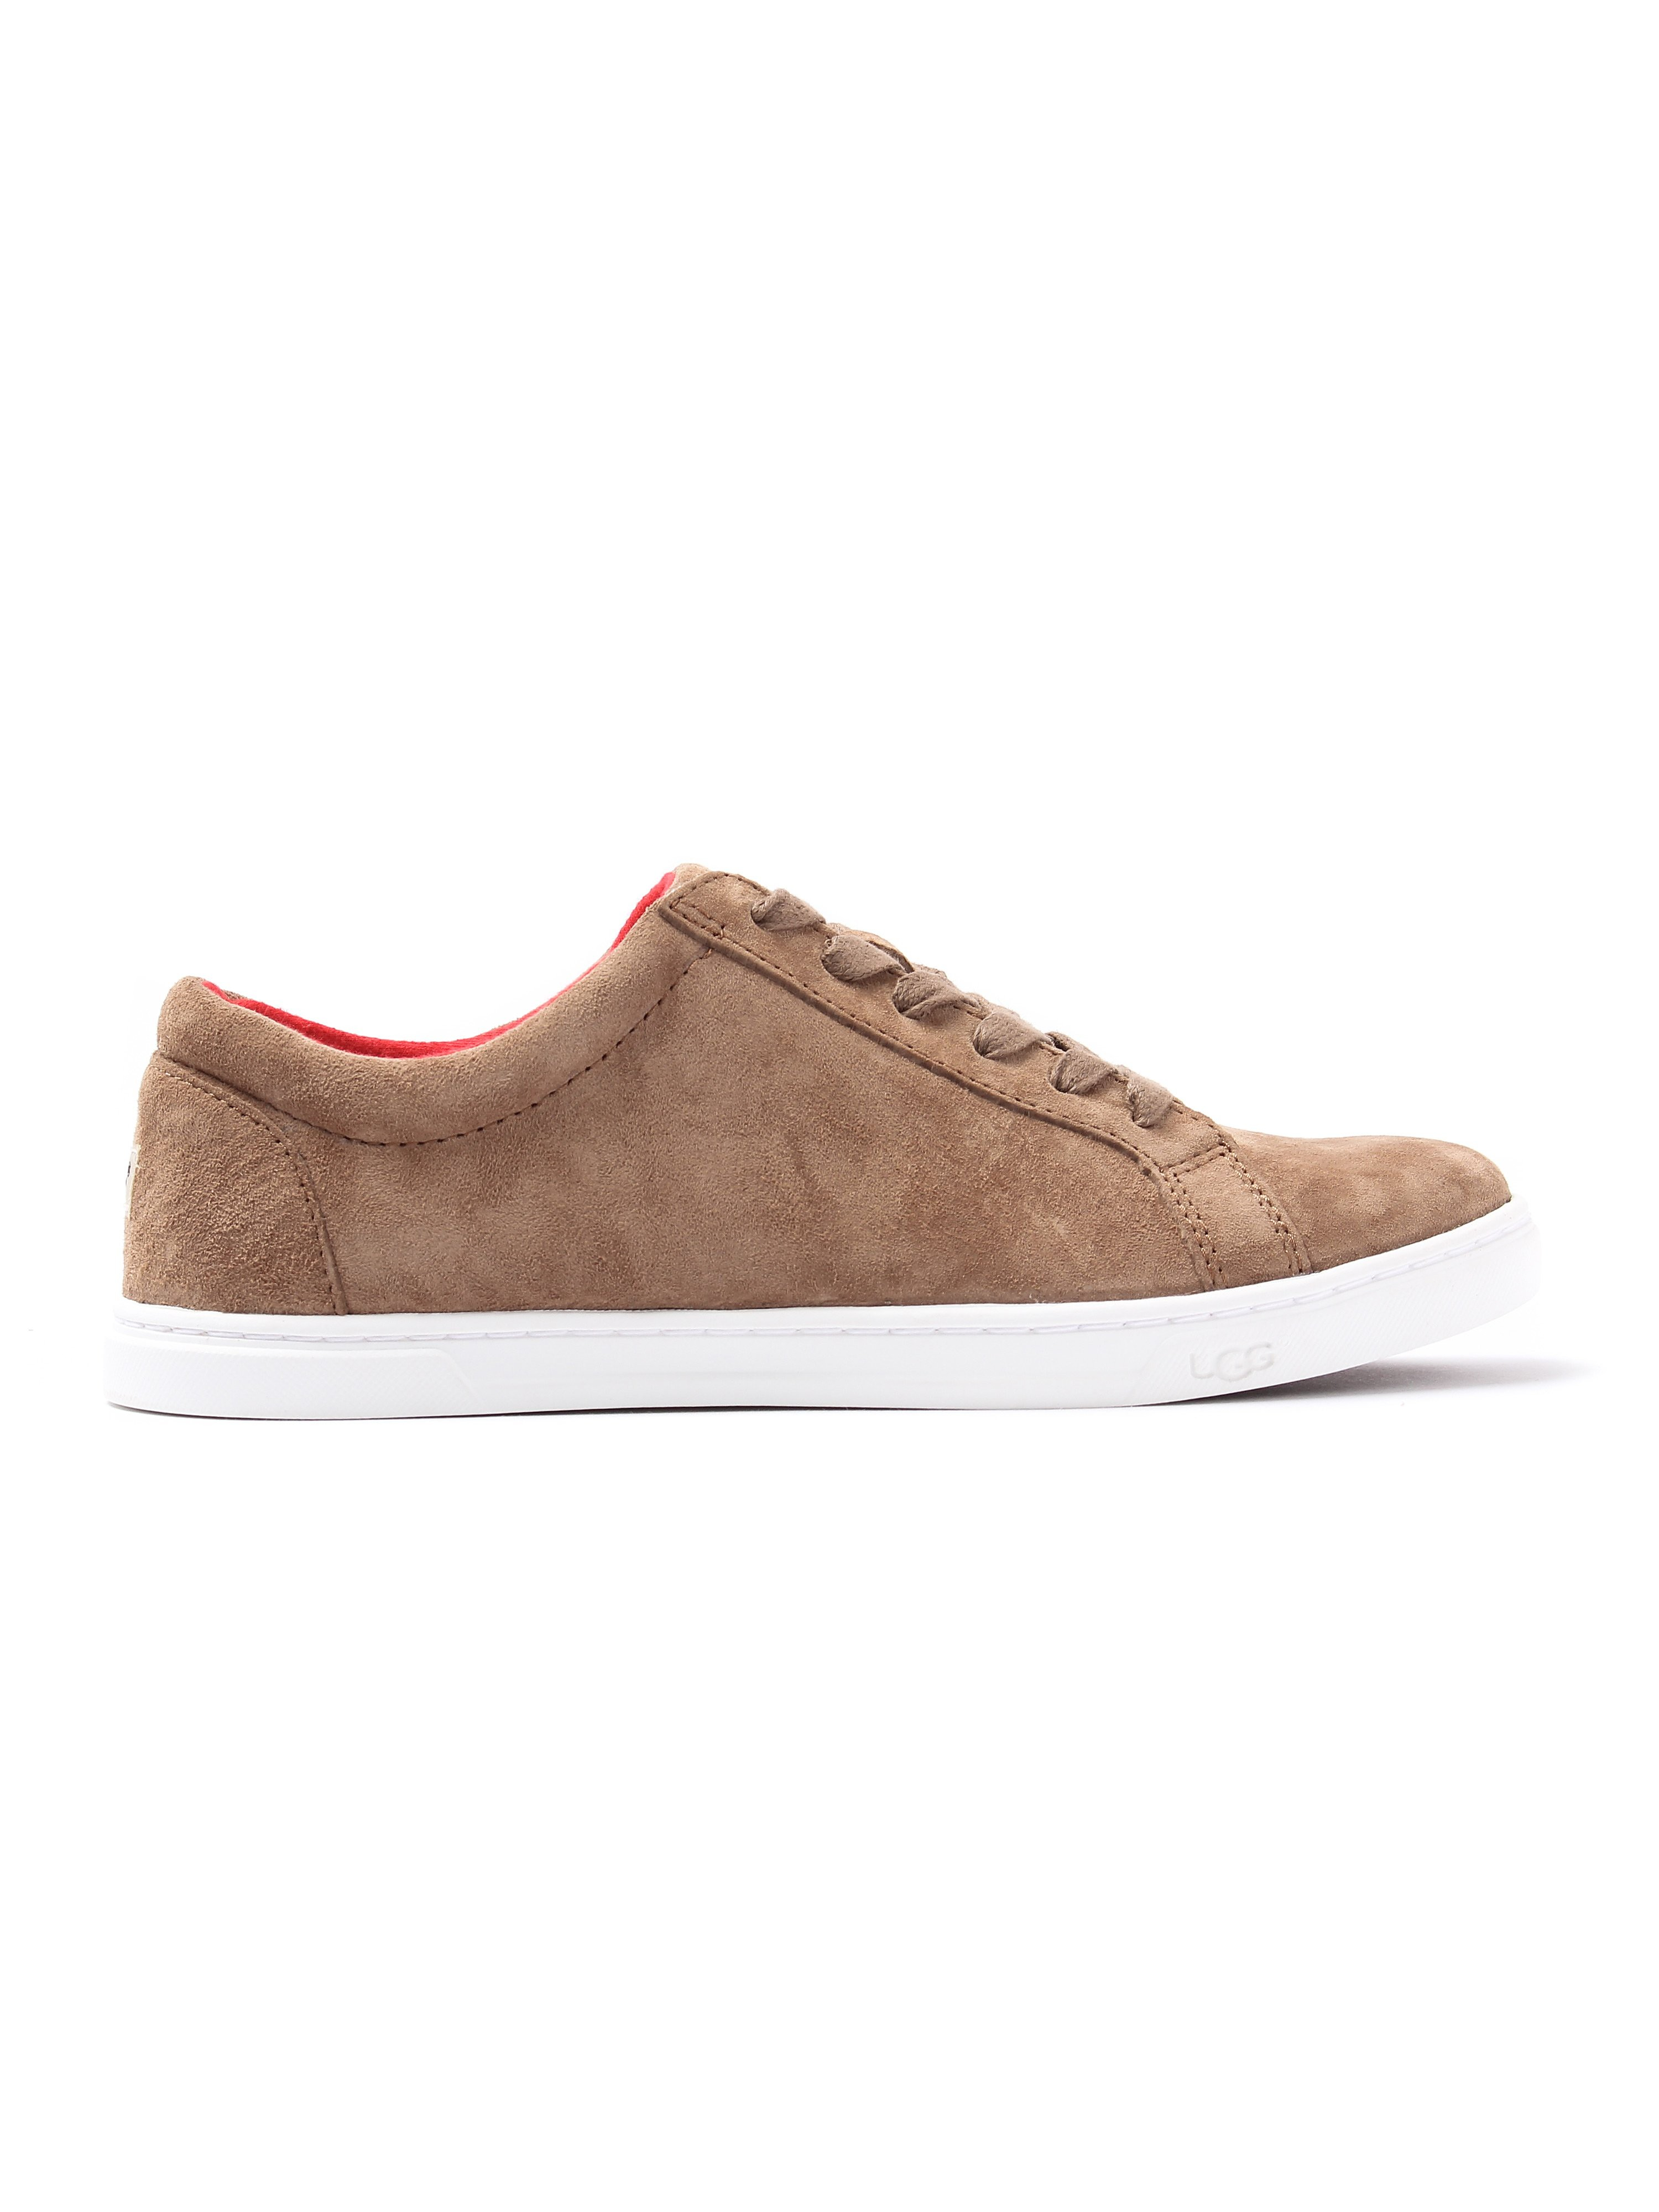 Ugg Women's Karine Suede Low-Rise Trainers - Chestnut